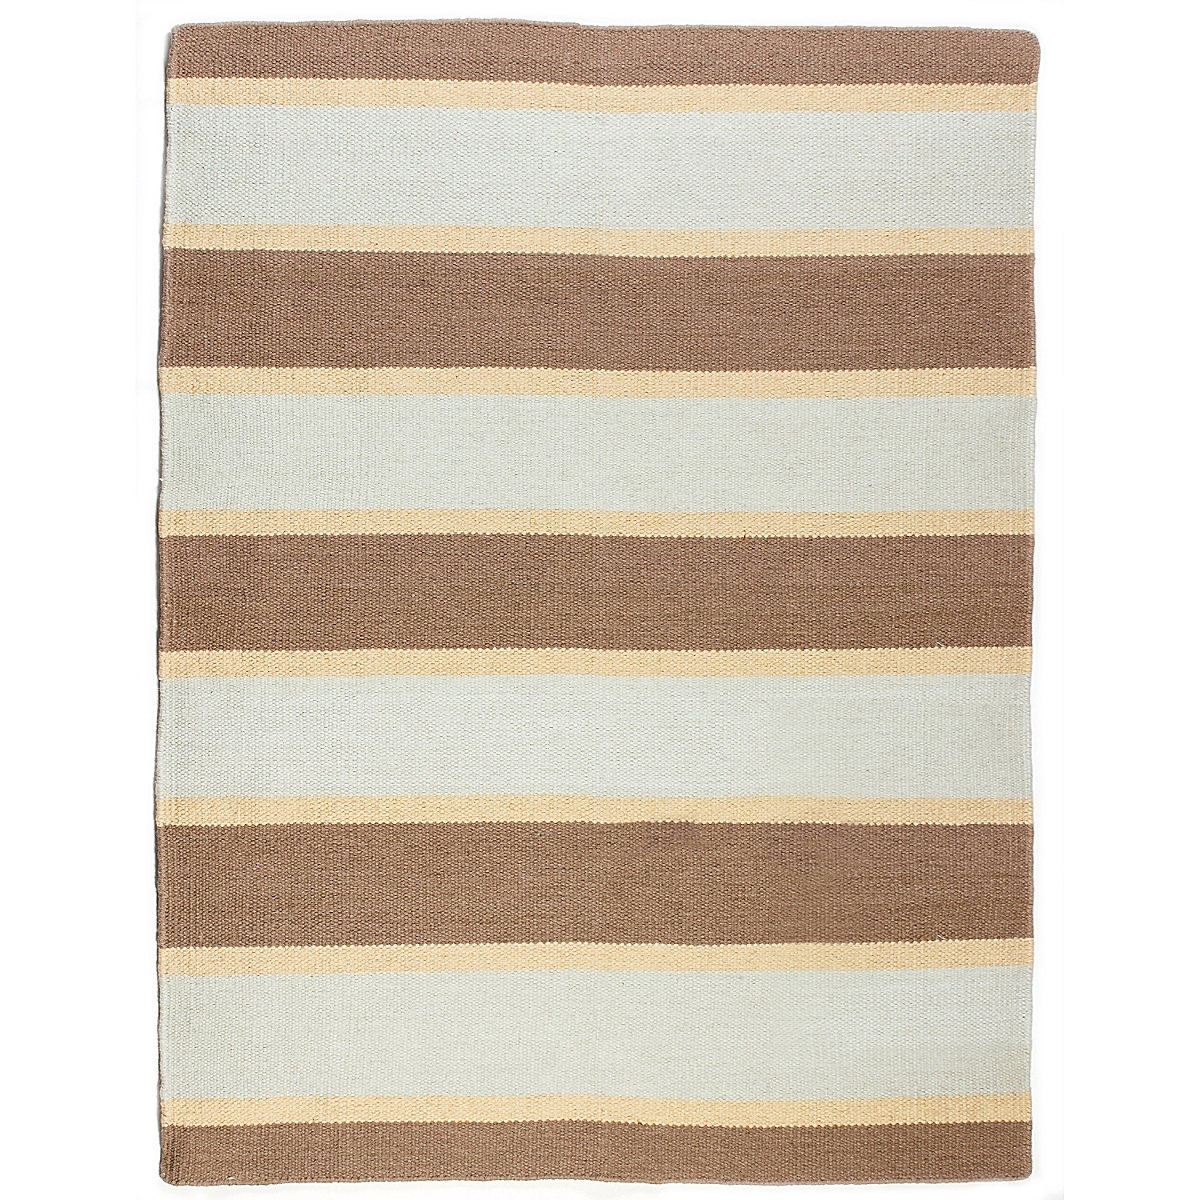 Currituck Wool Berber Striped Rug